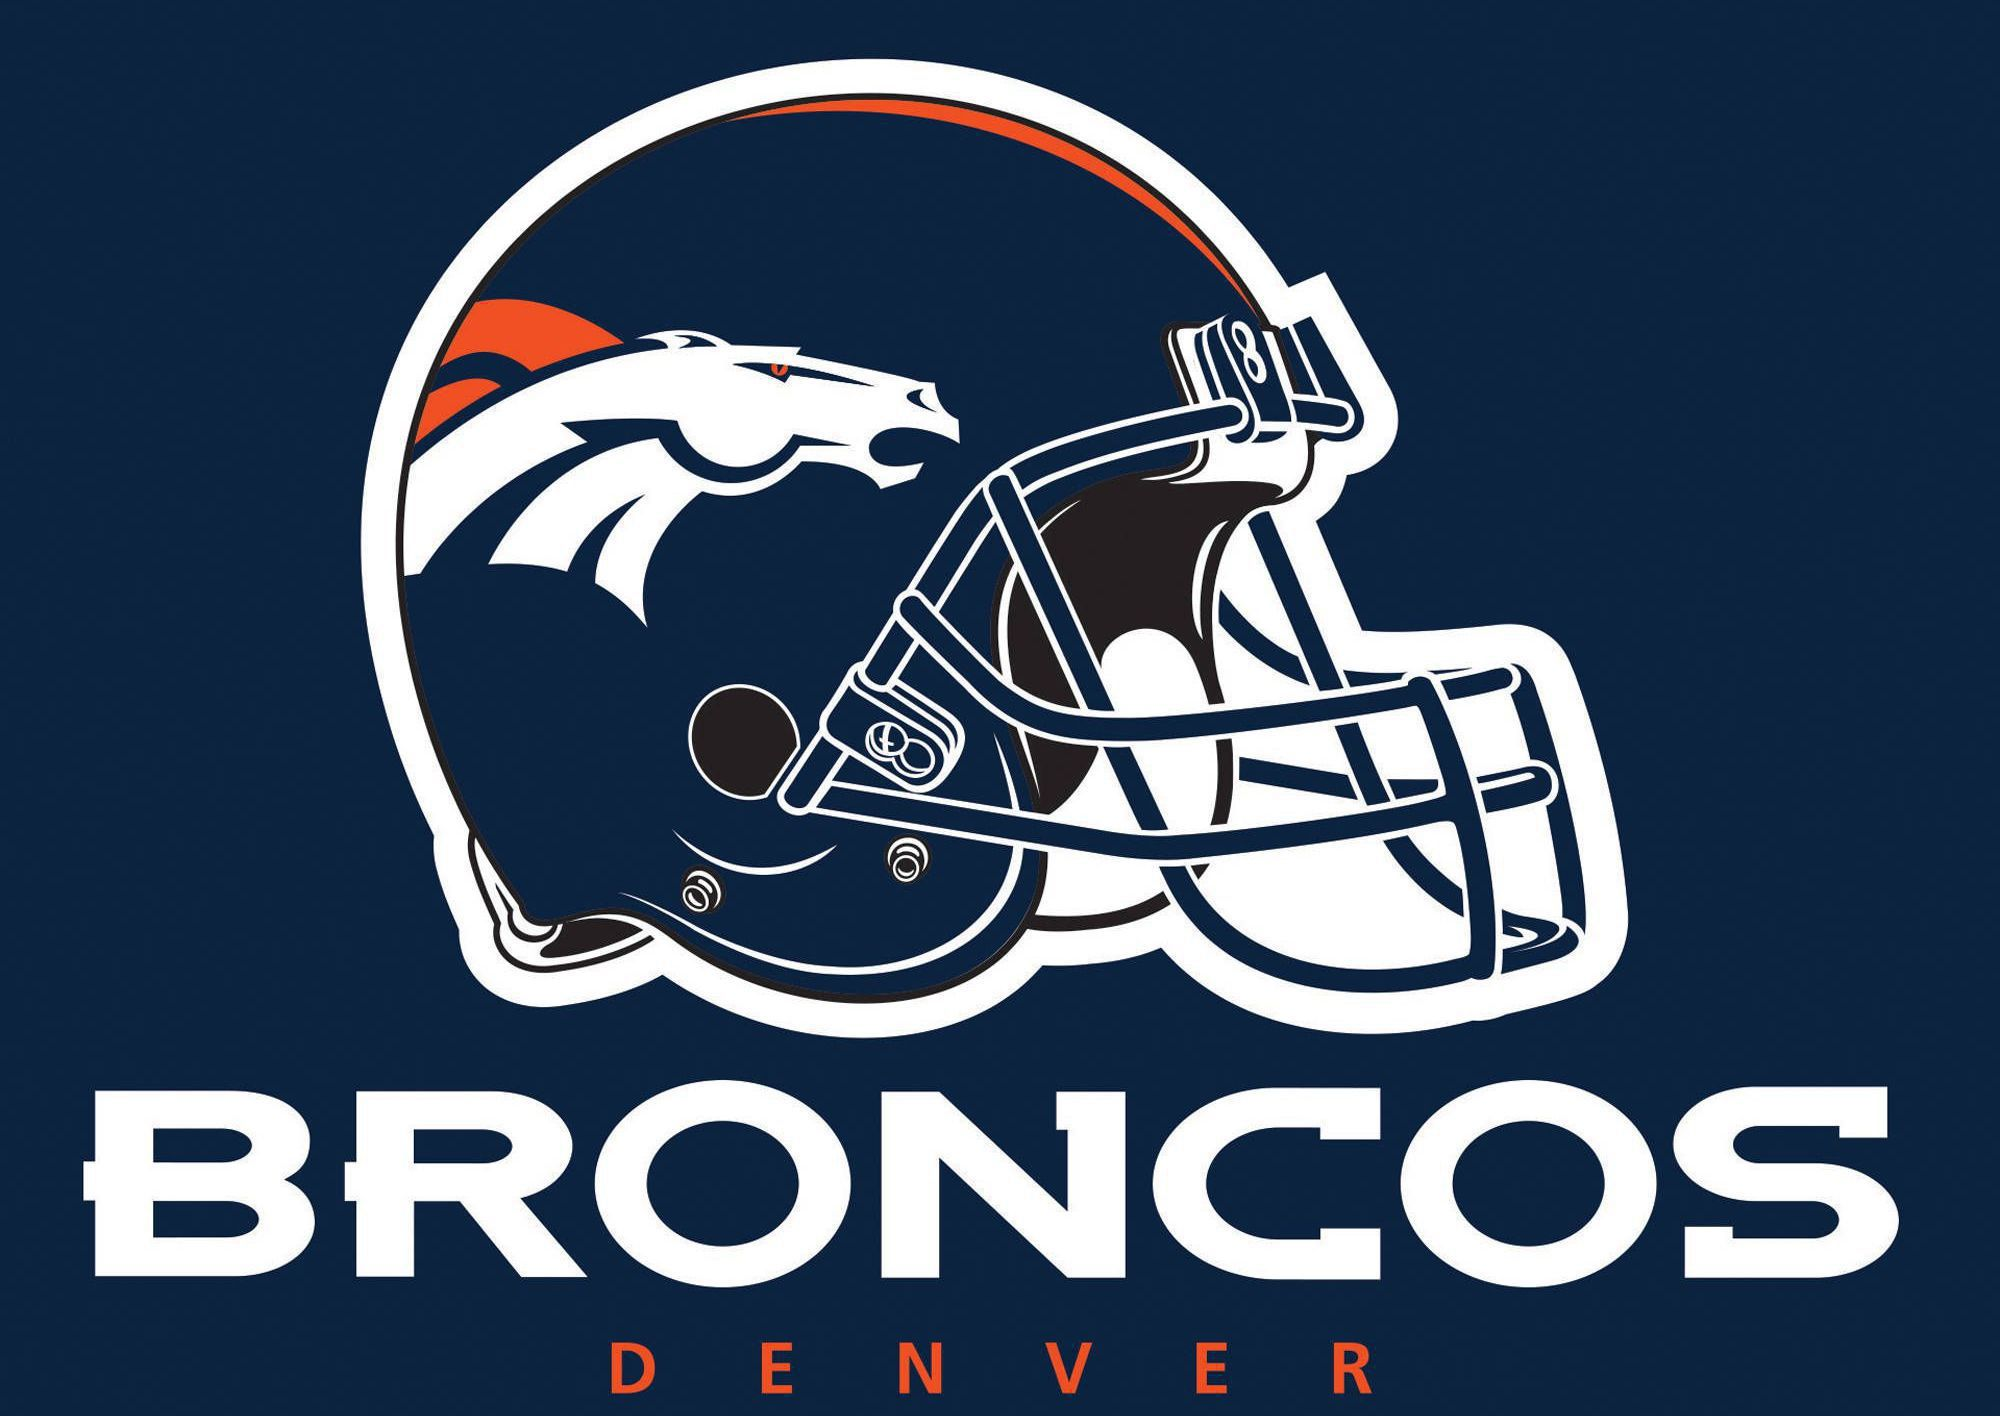 Broncos Wallpaper Pack